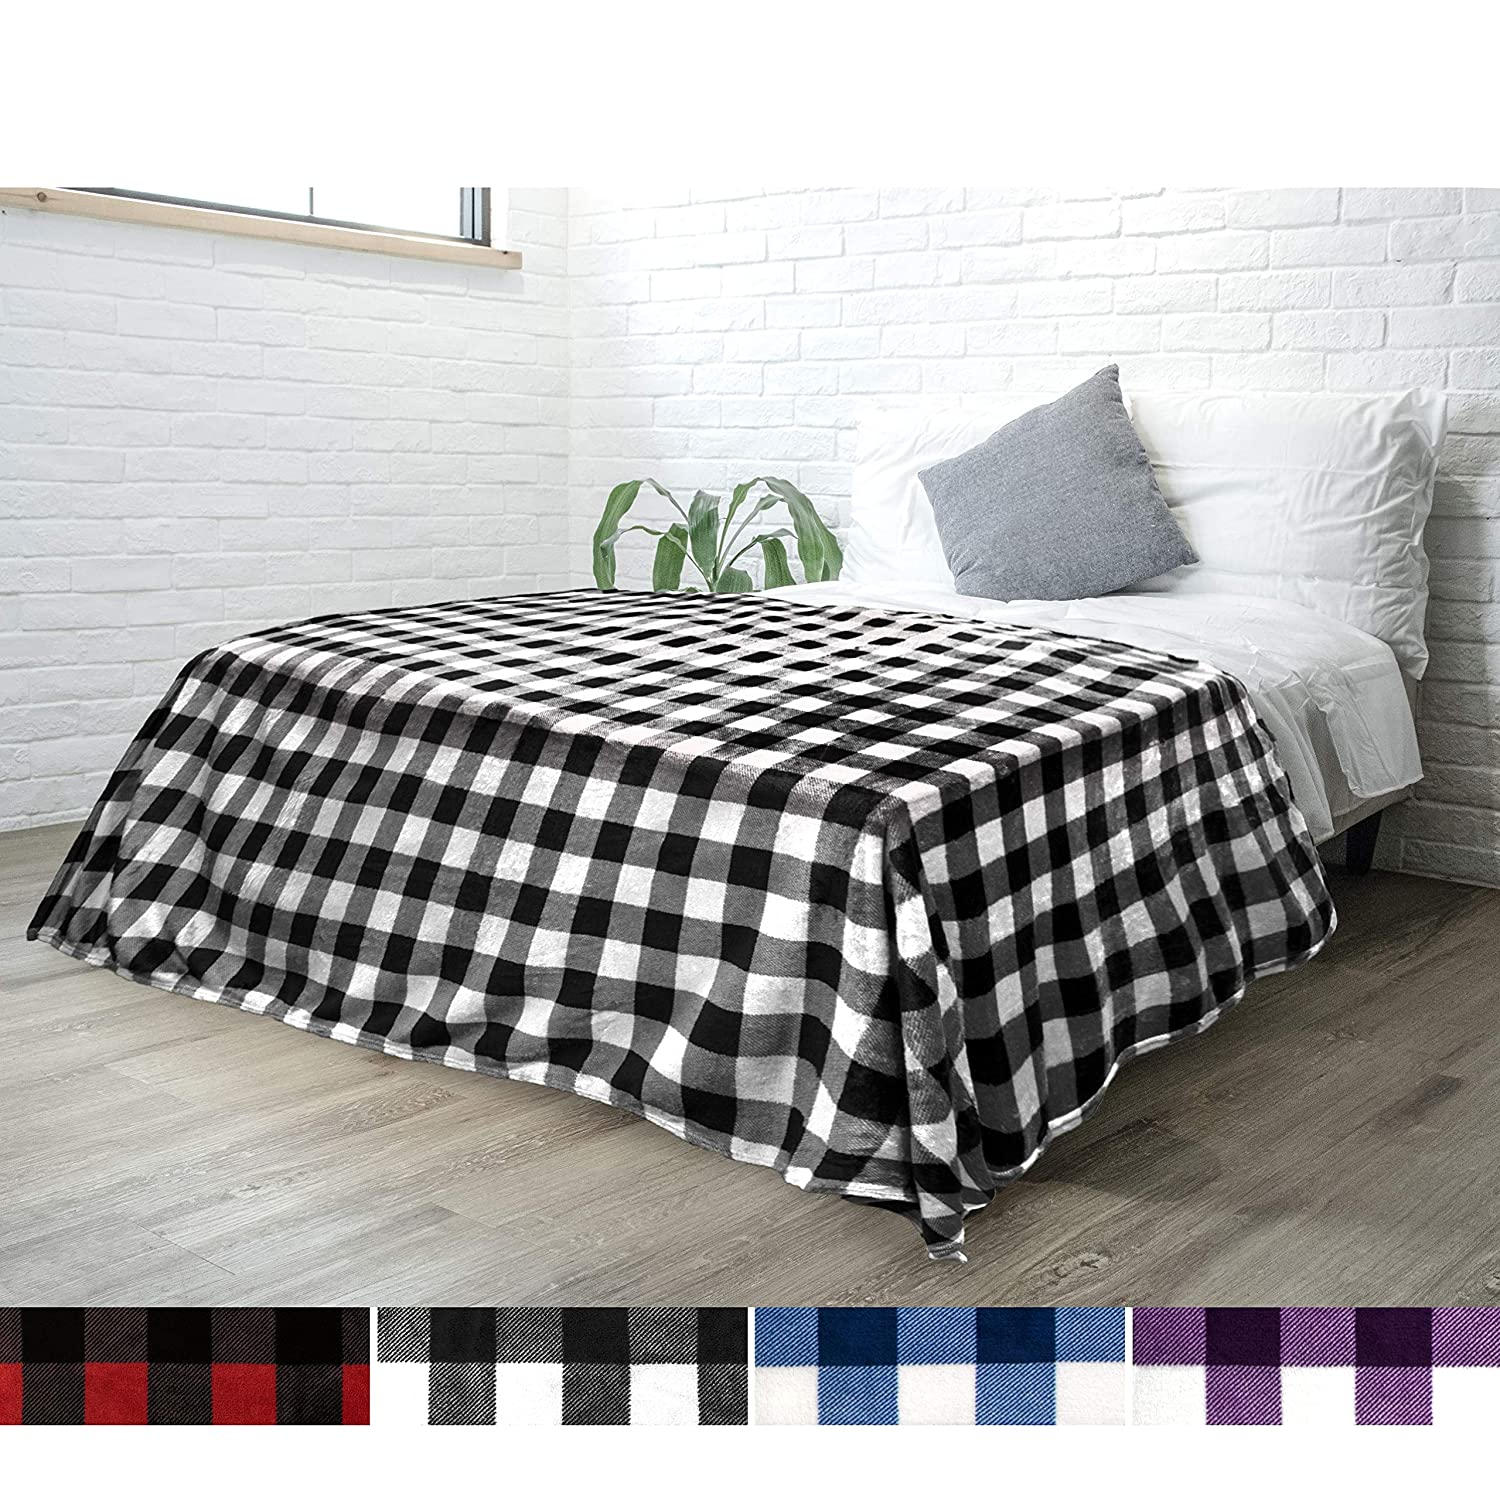 PAVILIA Flannel Fleece Throw Blanket for Sofa Couch Bed | Super Soft Velvet Plaid Pattern Checkered Decorative Throw | Warm Cozy Lightweight Microfiber | 60 x 80 Inches Plaid White/Black